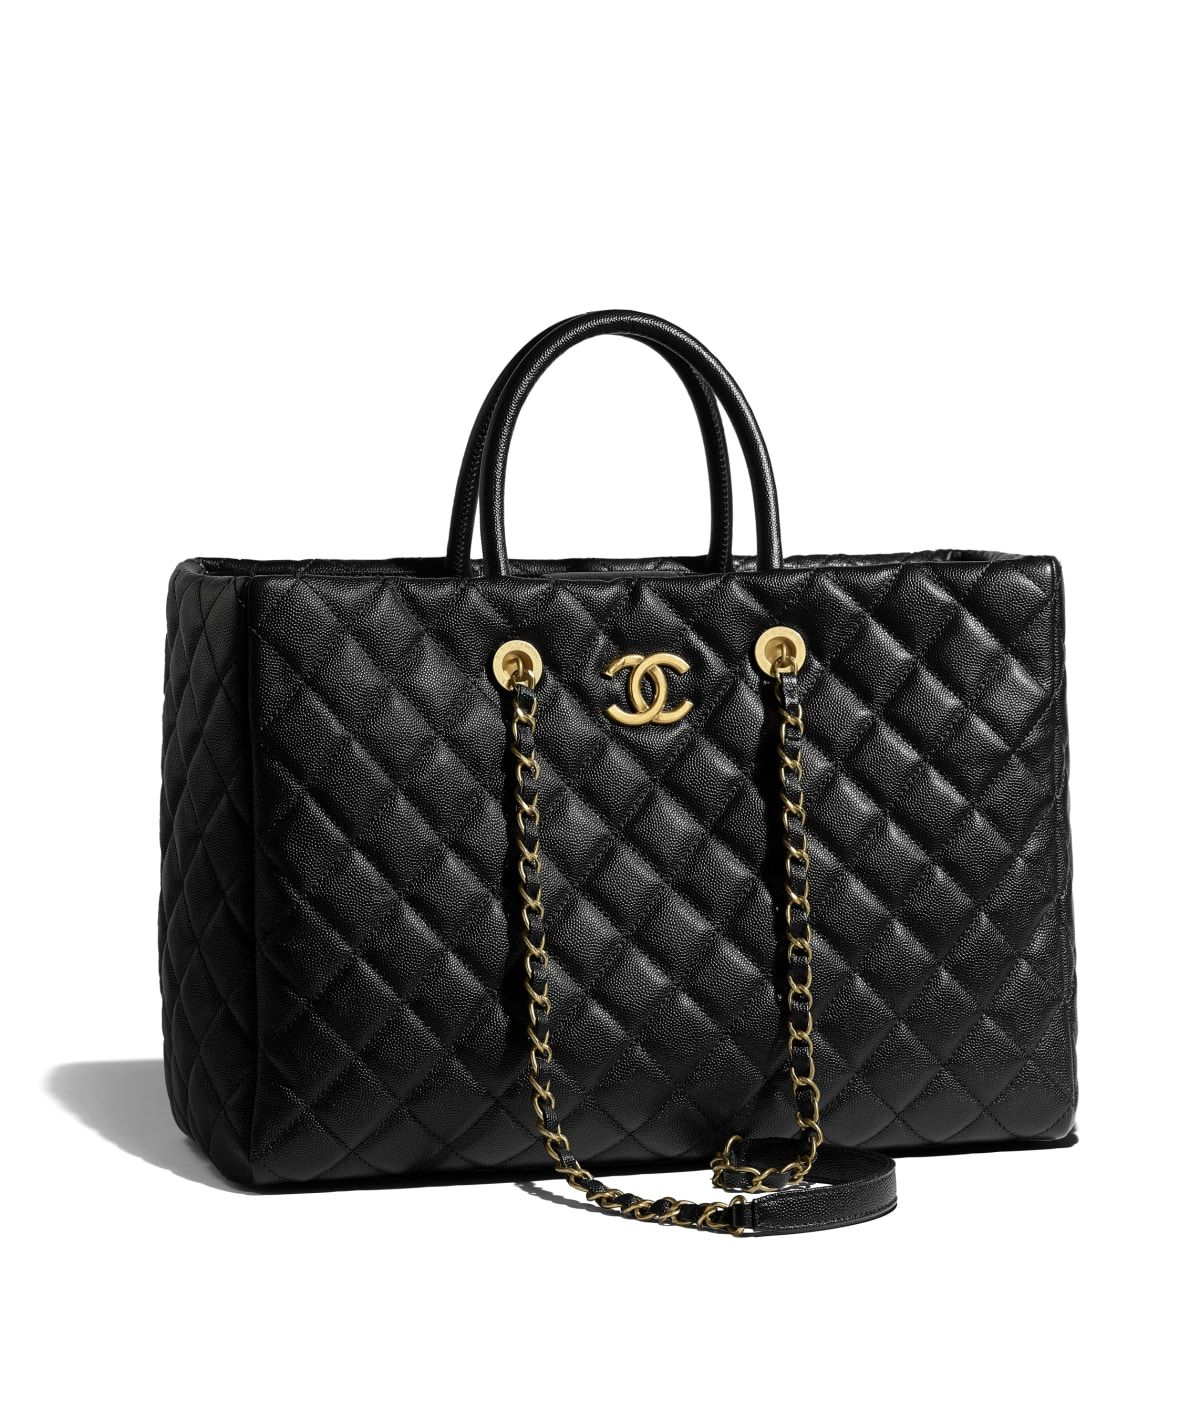 da67692eff07 Handbags of the {collectionName} CHANEL Fashion collection : Large Shopping  Bag, calfskin & gold-tone metal, black on the CHANEL official website.